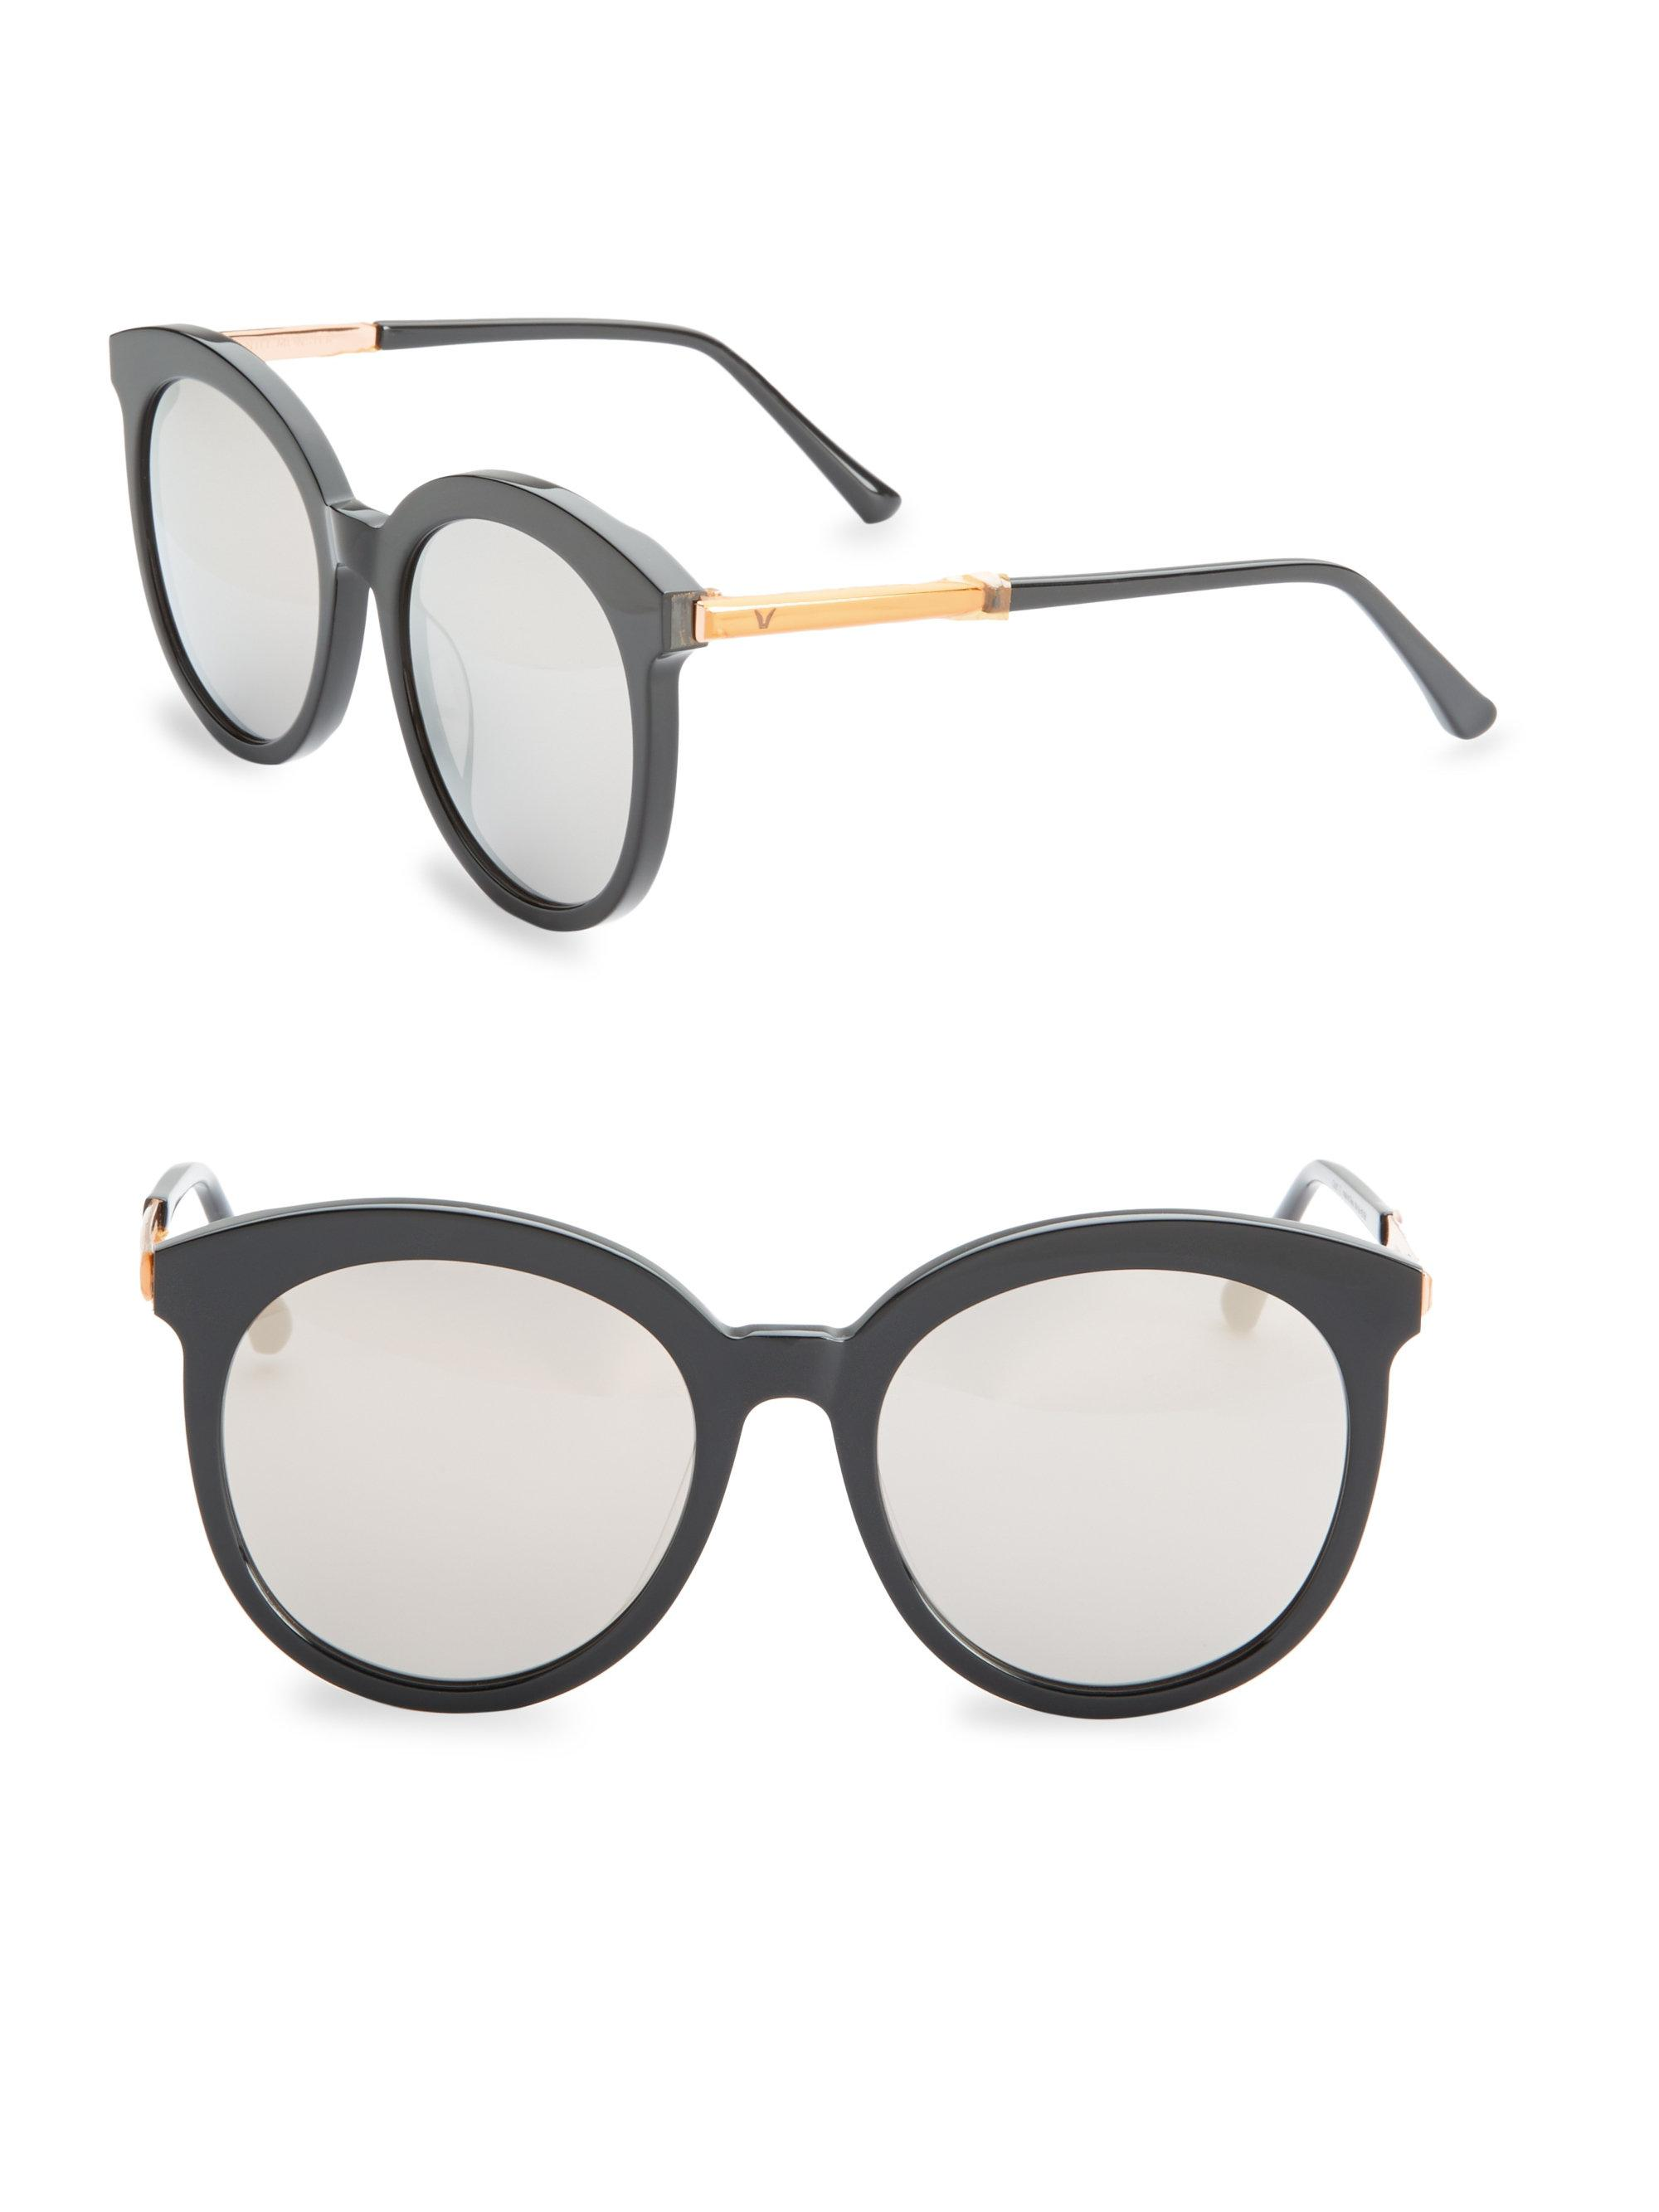 181b6ad04a0d Lyst - Gentle Monster Love Me Some Tale 55mm Sunglasses in Gray